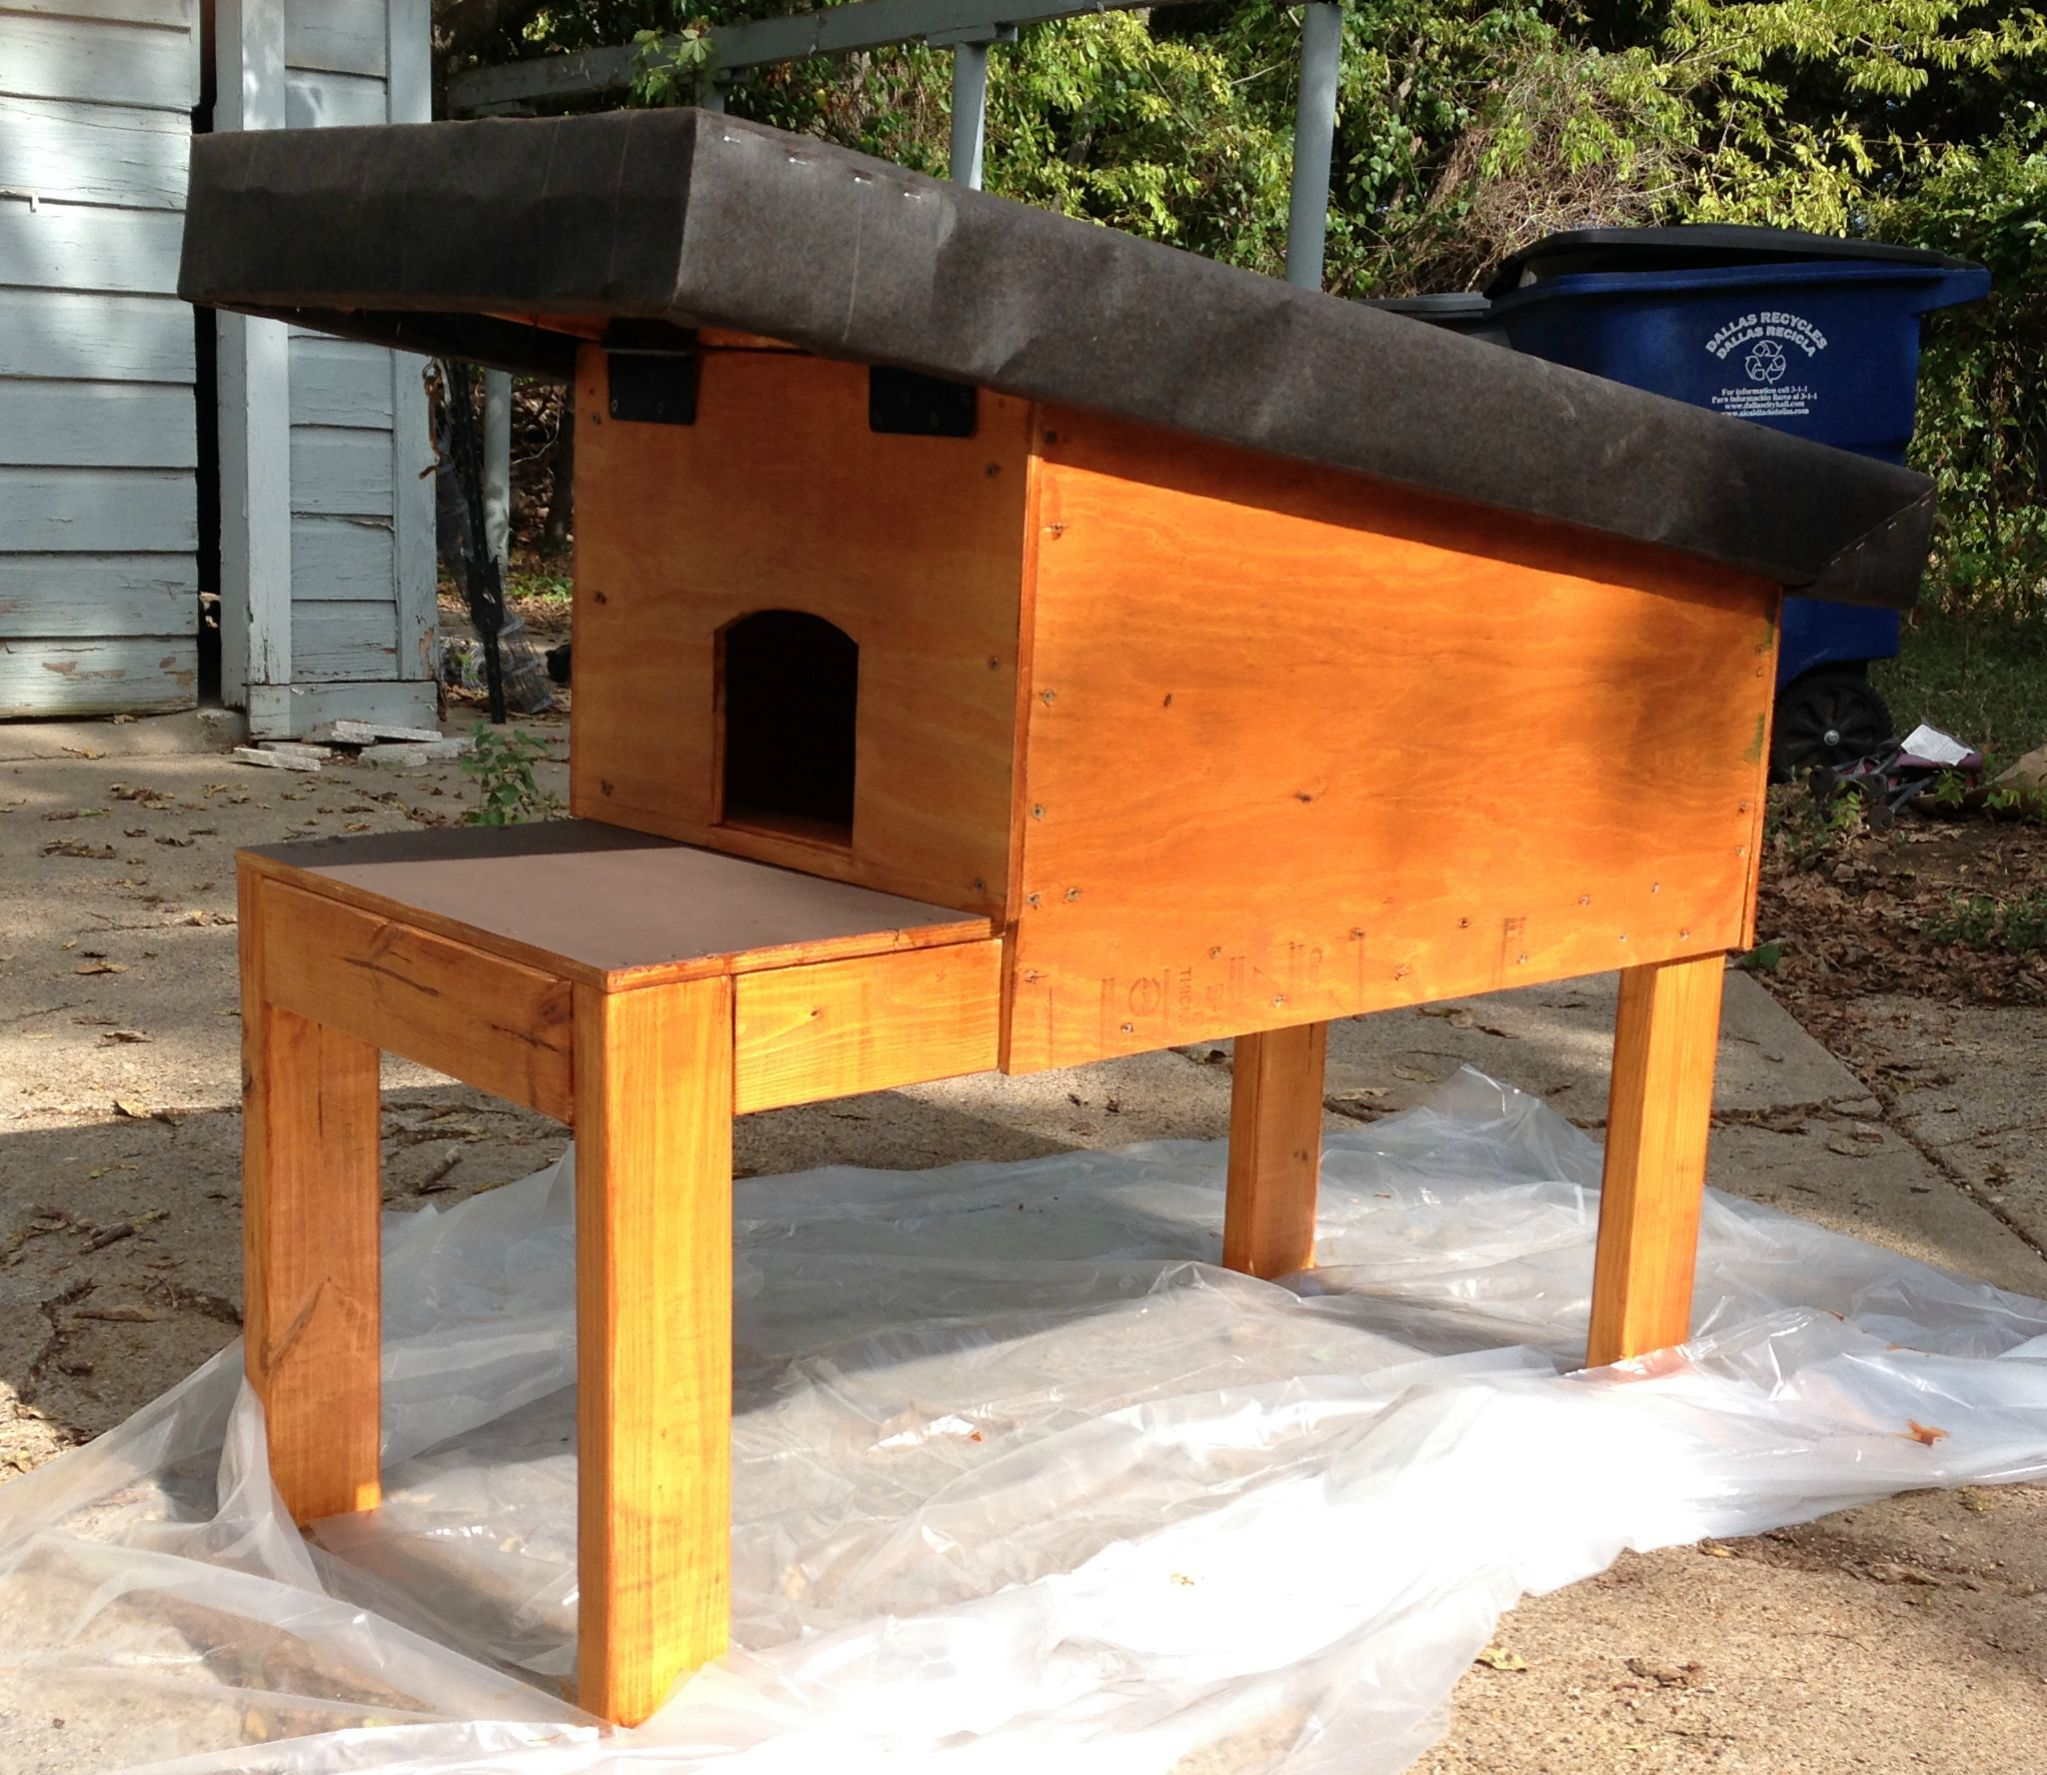 Feral Cat House Project - Album on Imgur | cats are the best ... on fast cat home, dog cat home, mountain lion home, stray cat home, lizard home, squirrel home, pig cat home, pet cat home, cat lady home, chipmunk home, ferret home, duck home,